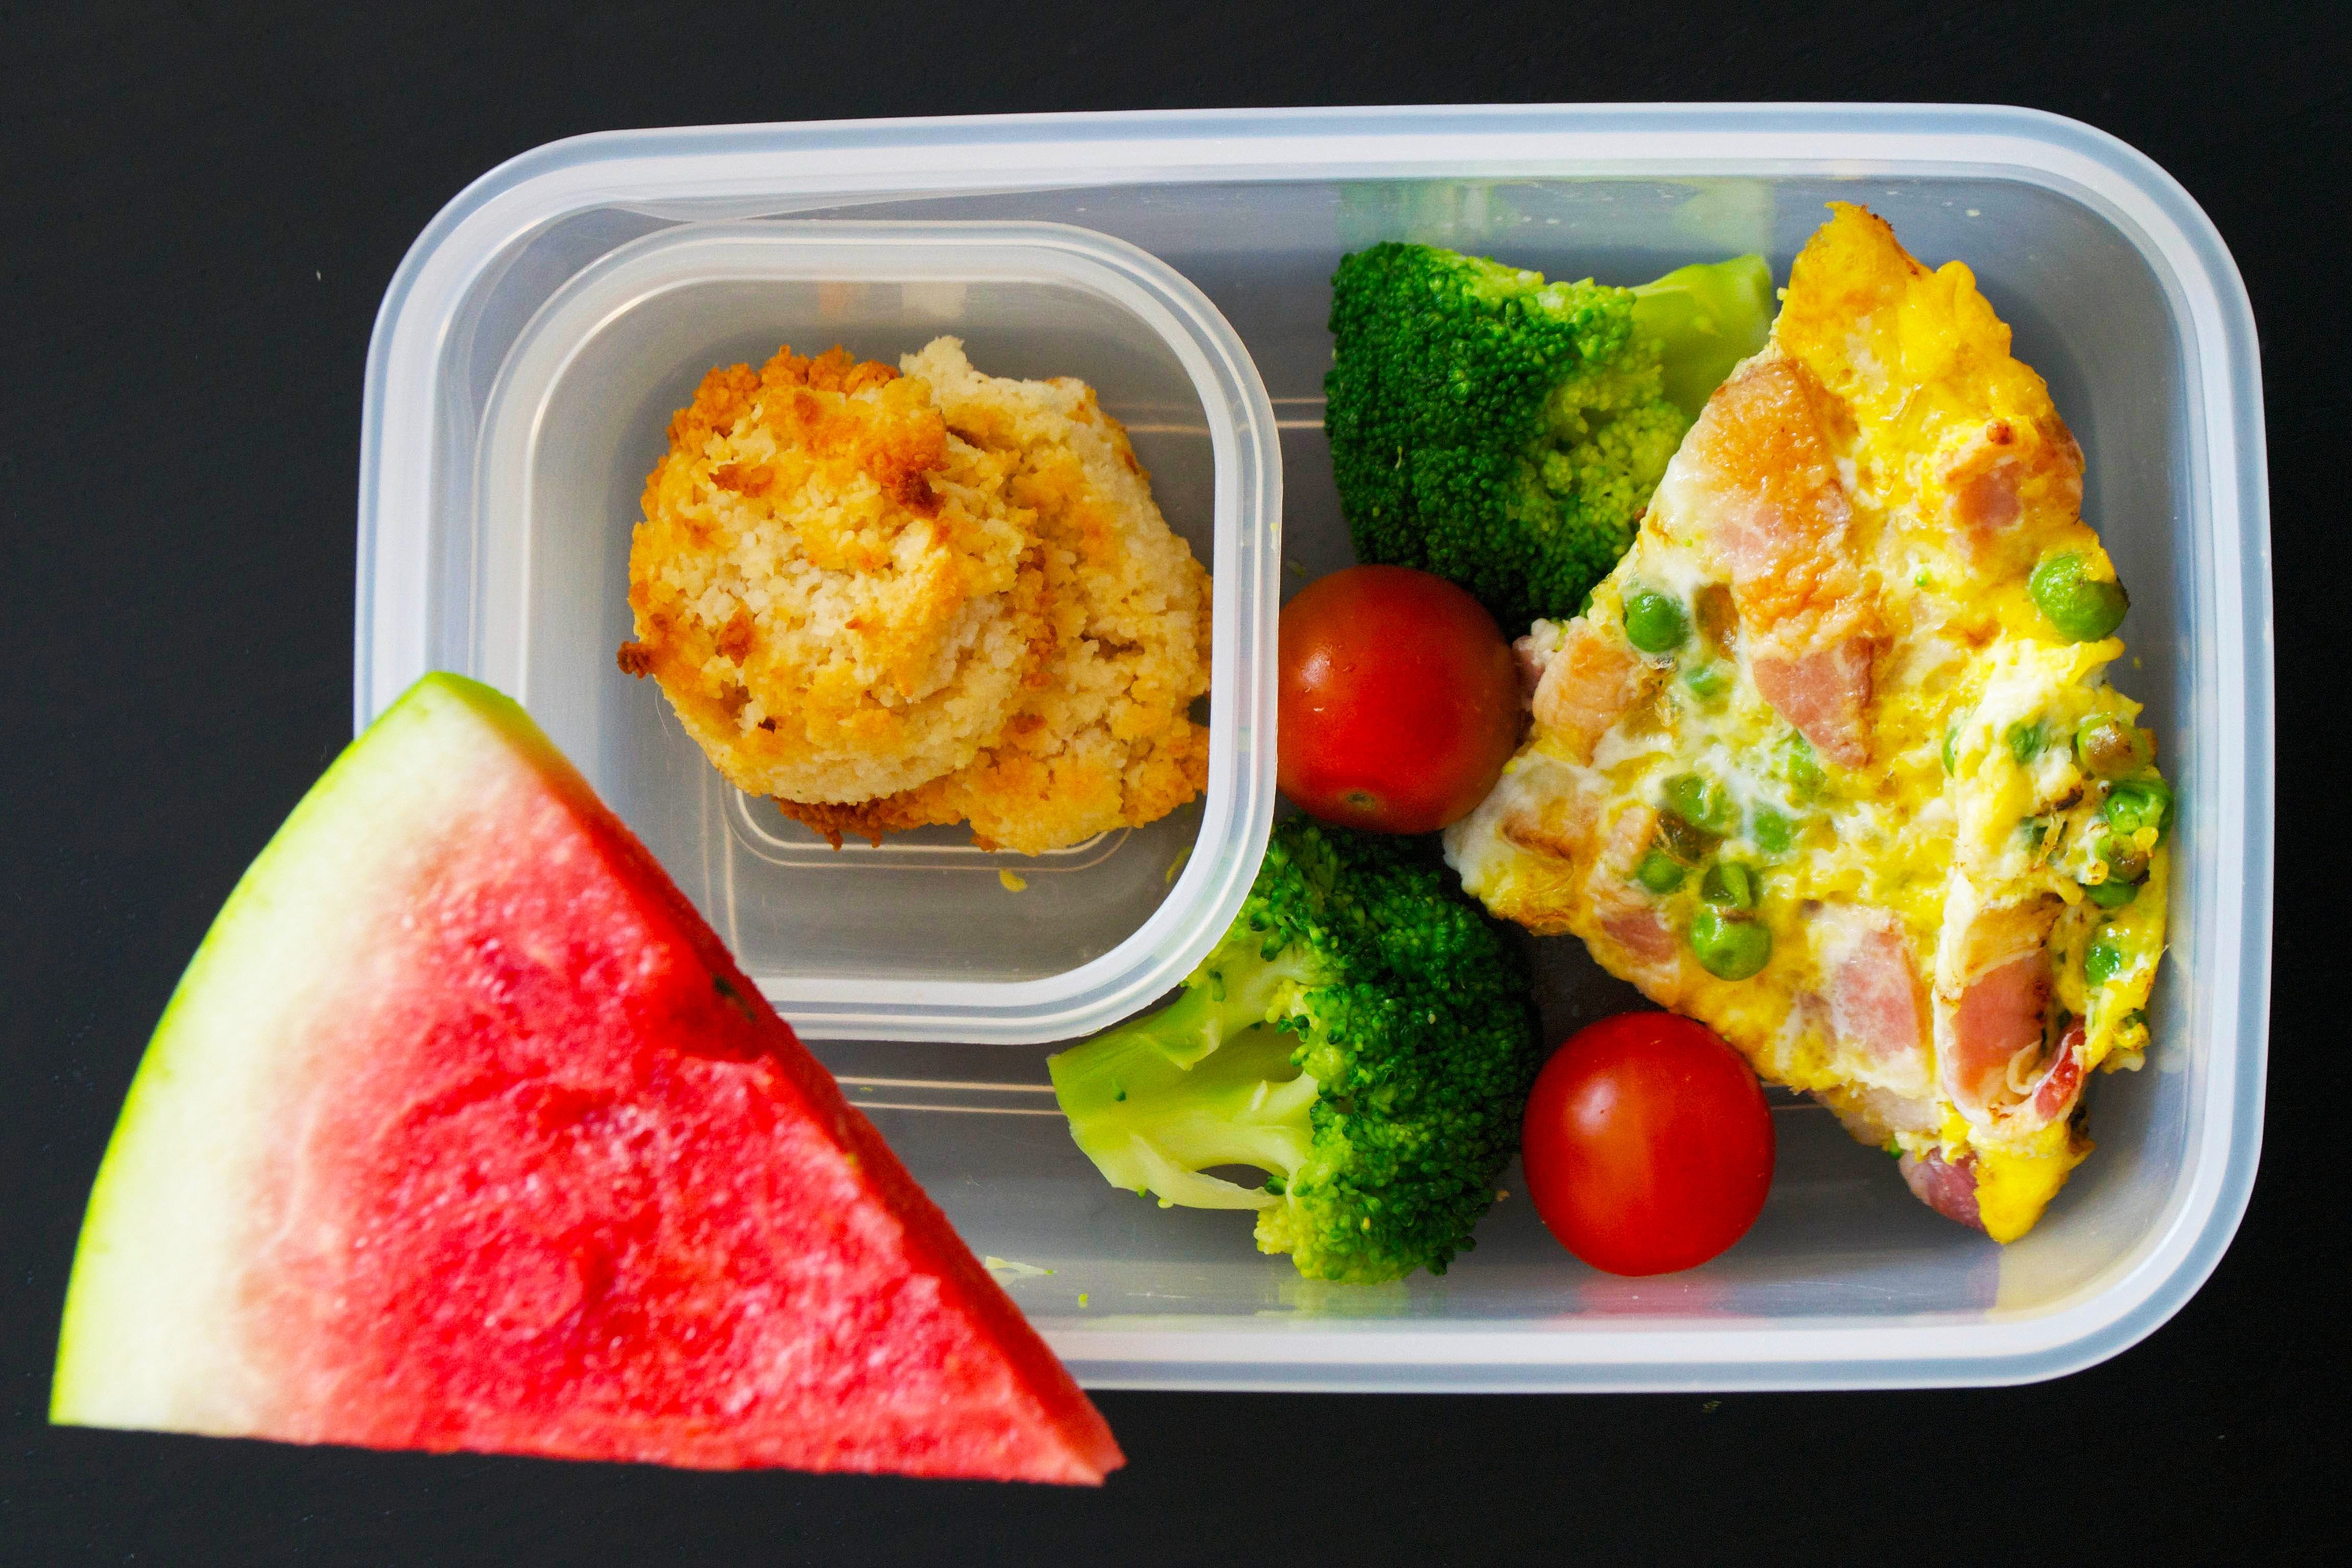 10 Lovable Paleo Lunch Ideas For Work 5 days of paleo packed lunches for kids and adults tooprimal eye 4